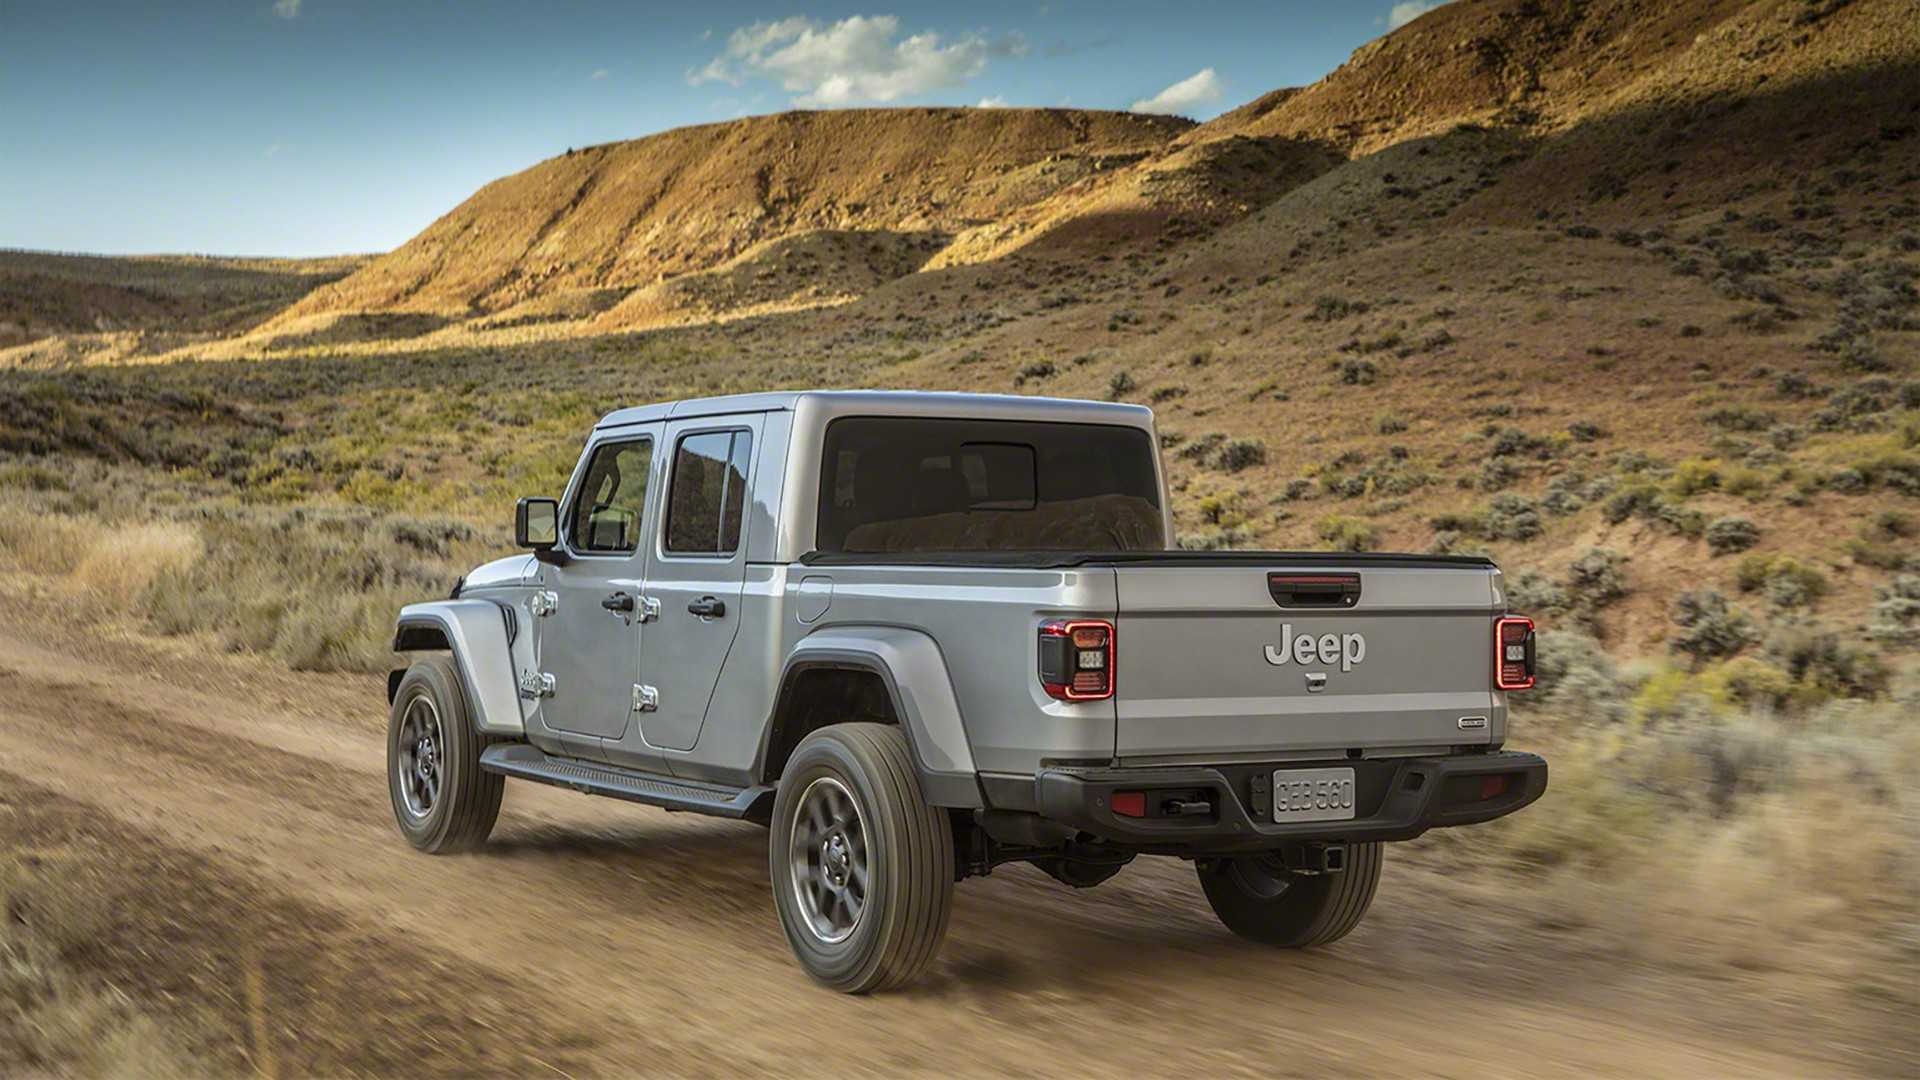 Jeep Configurator For 2020 Gladiator Pickup Truck Goes Live - autoevolution